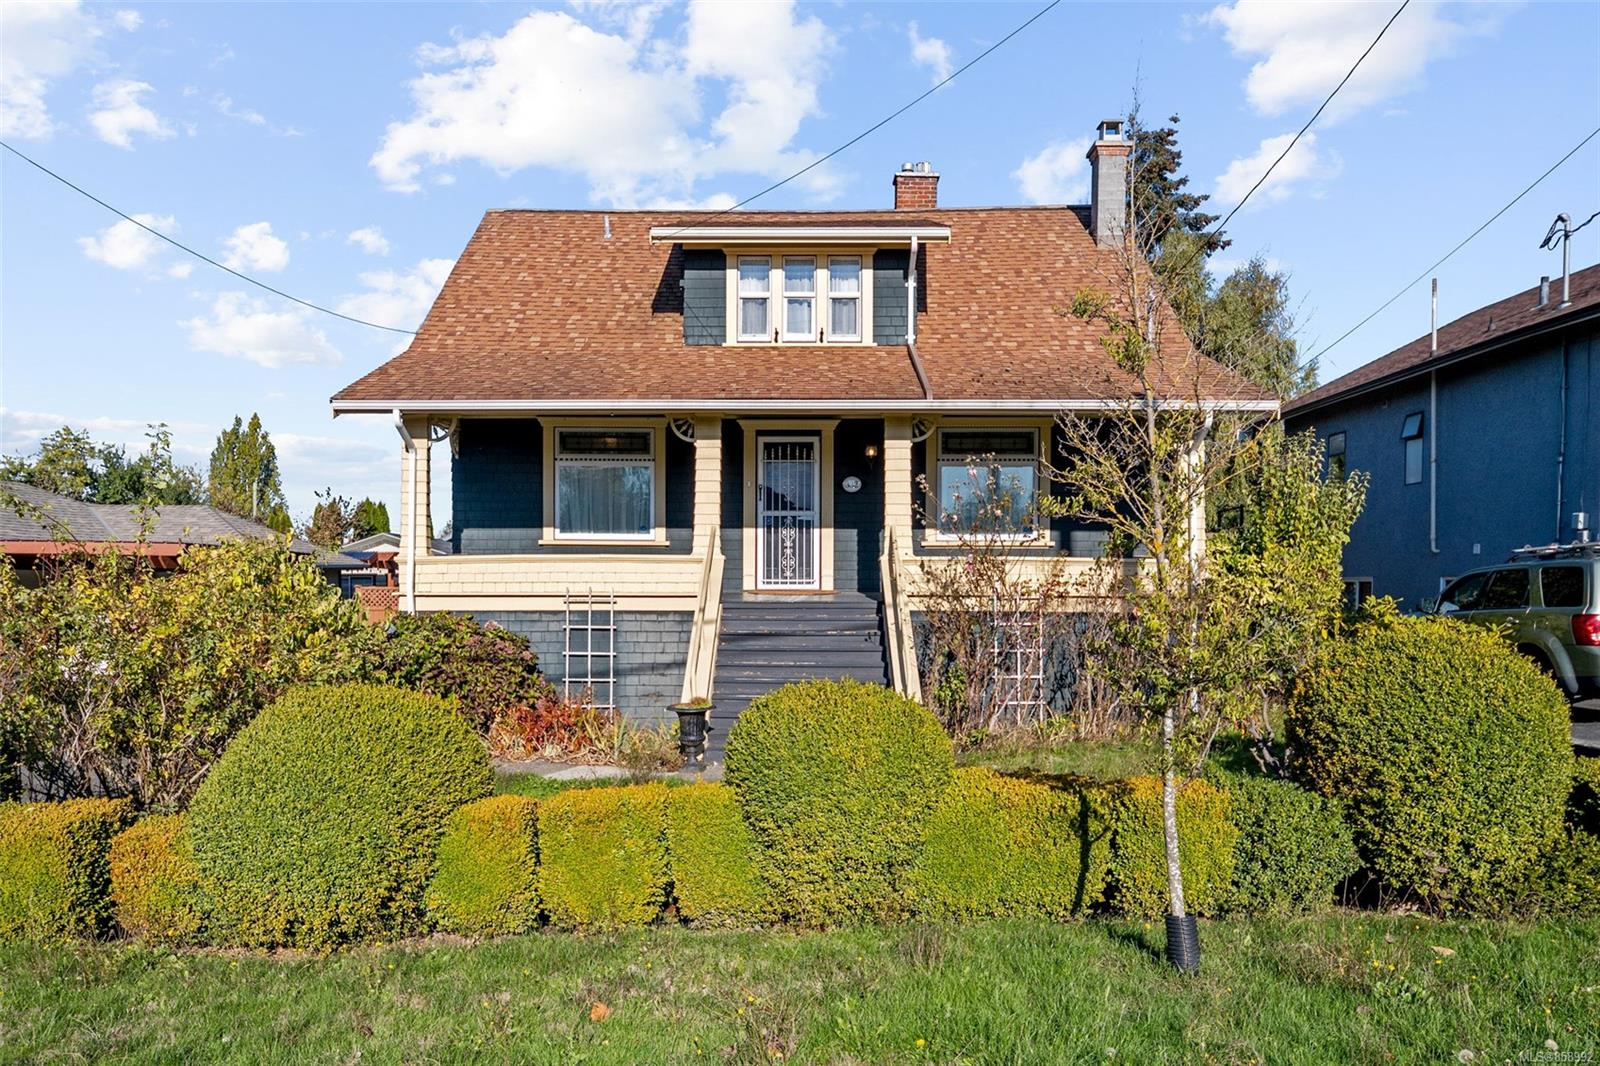 Welcome to 332 Obed Avenue, a 3 bedroom, 2 bathroom character home located in one of Victoria's favourite neighbourhoods! This 1913 house has been immaculately maintained, with stained glass windows, period trim throughout, 10' ceilings, newer windows throughout, and hardwood floors. The main level includes a cozy family room with a gas fireplace, 2 bedrooms with large closets, an updated 4pc bathroom, bright kitchen with plenty of storage, and a spacious dining room. The upstairs offers a private and expansive master suite, complete with a bright 3pc en-suite and his-and-hers closets. The lower level includes laundry & plenty of room for extra storage. You'll find a private and fenced backyard, easy to maintain and complete with a green house. The yard is capped off with a storage shed, perfect for all of your gardening tools. Plenty of parking, a gorgeous front porch, and located within steps of amenities, transit, and the Gorge Waterway, this home is an absolute must-see gem!